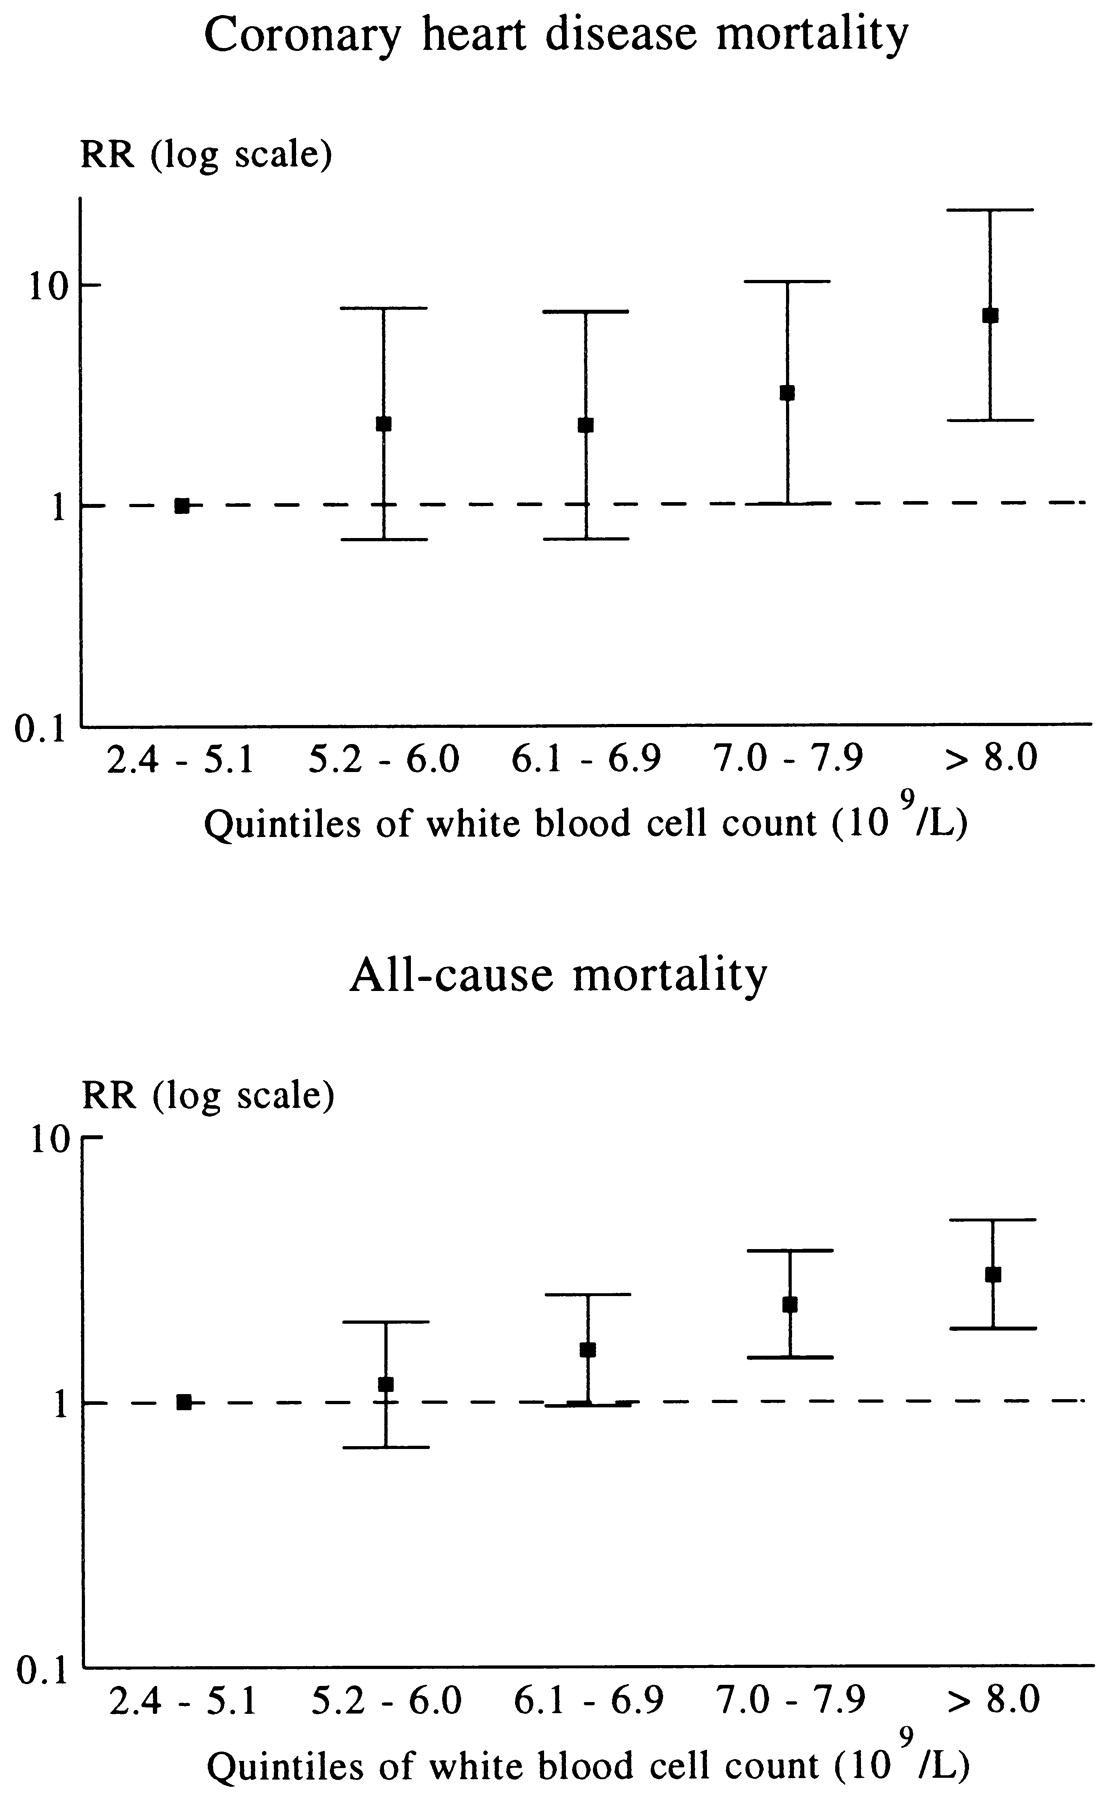 White Blood Cell Count and the Risk of Coronary Heart